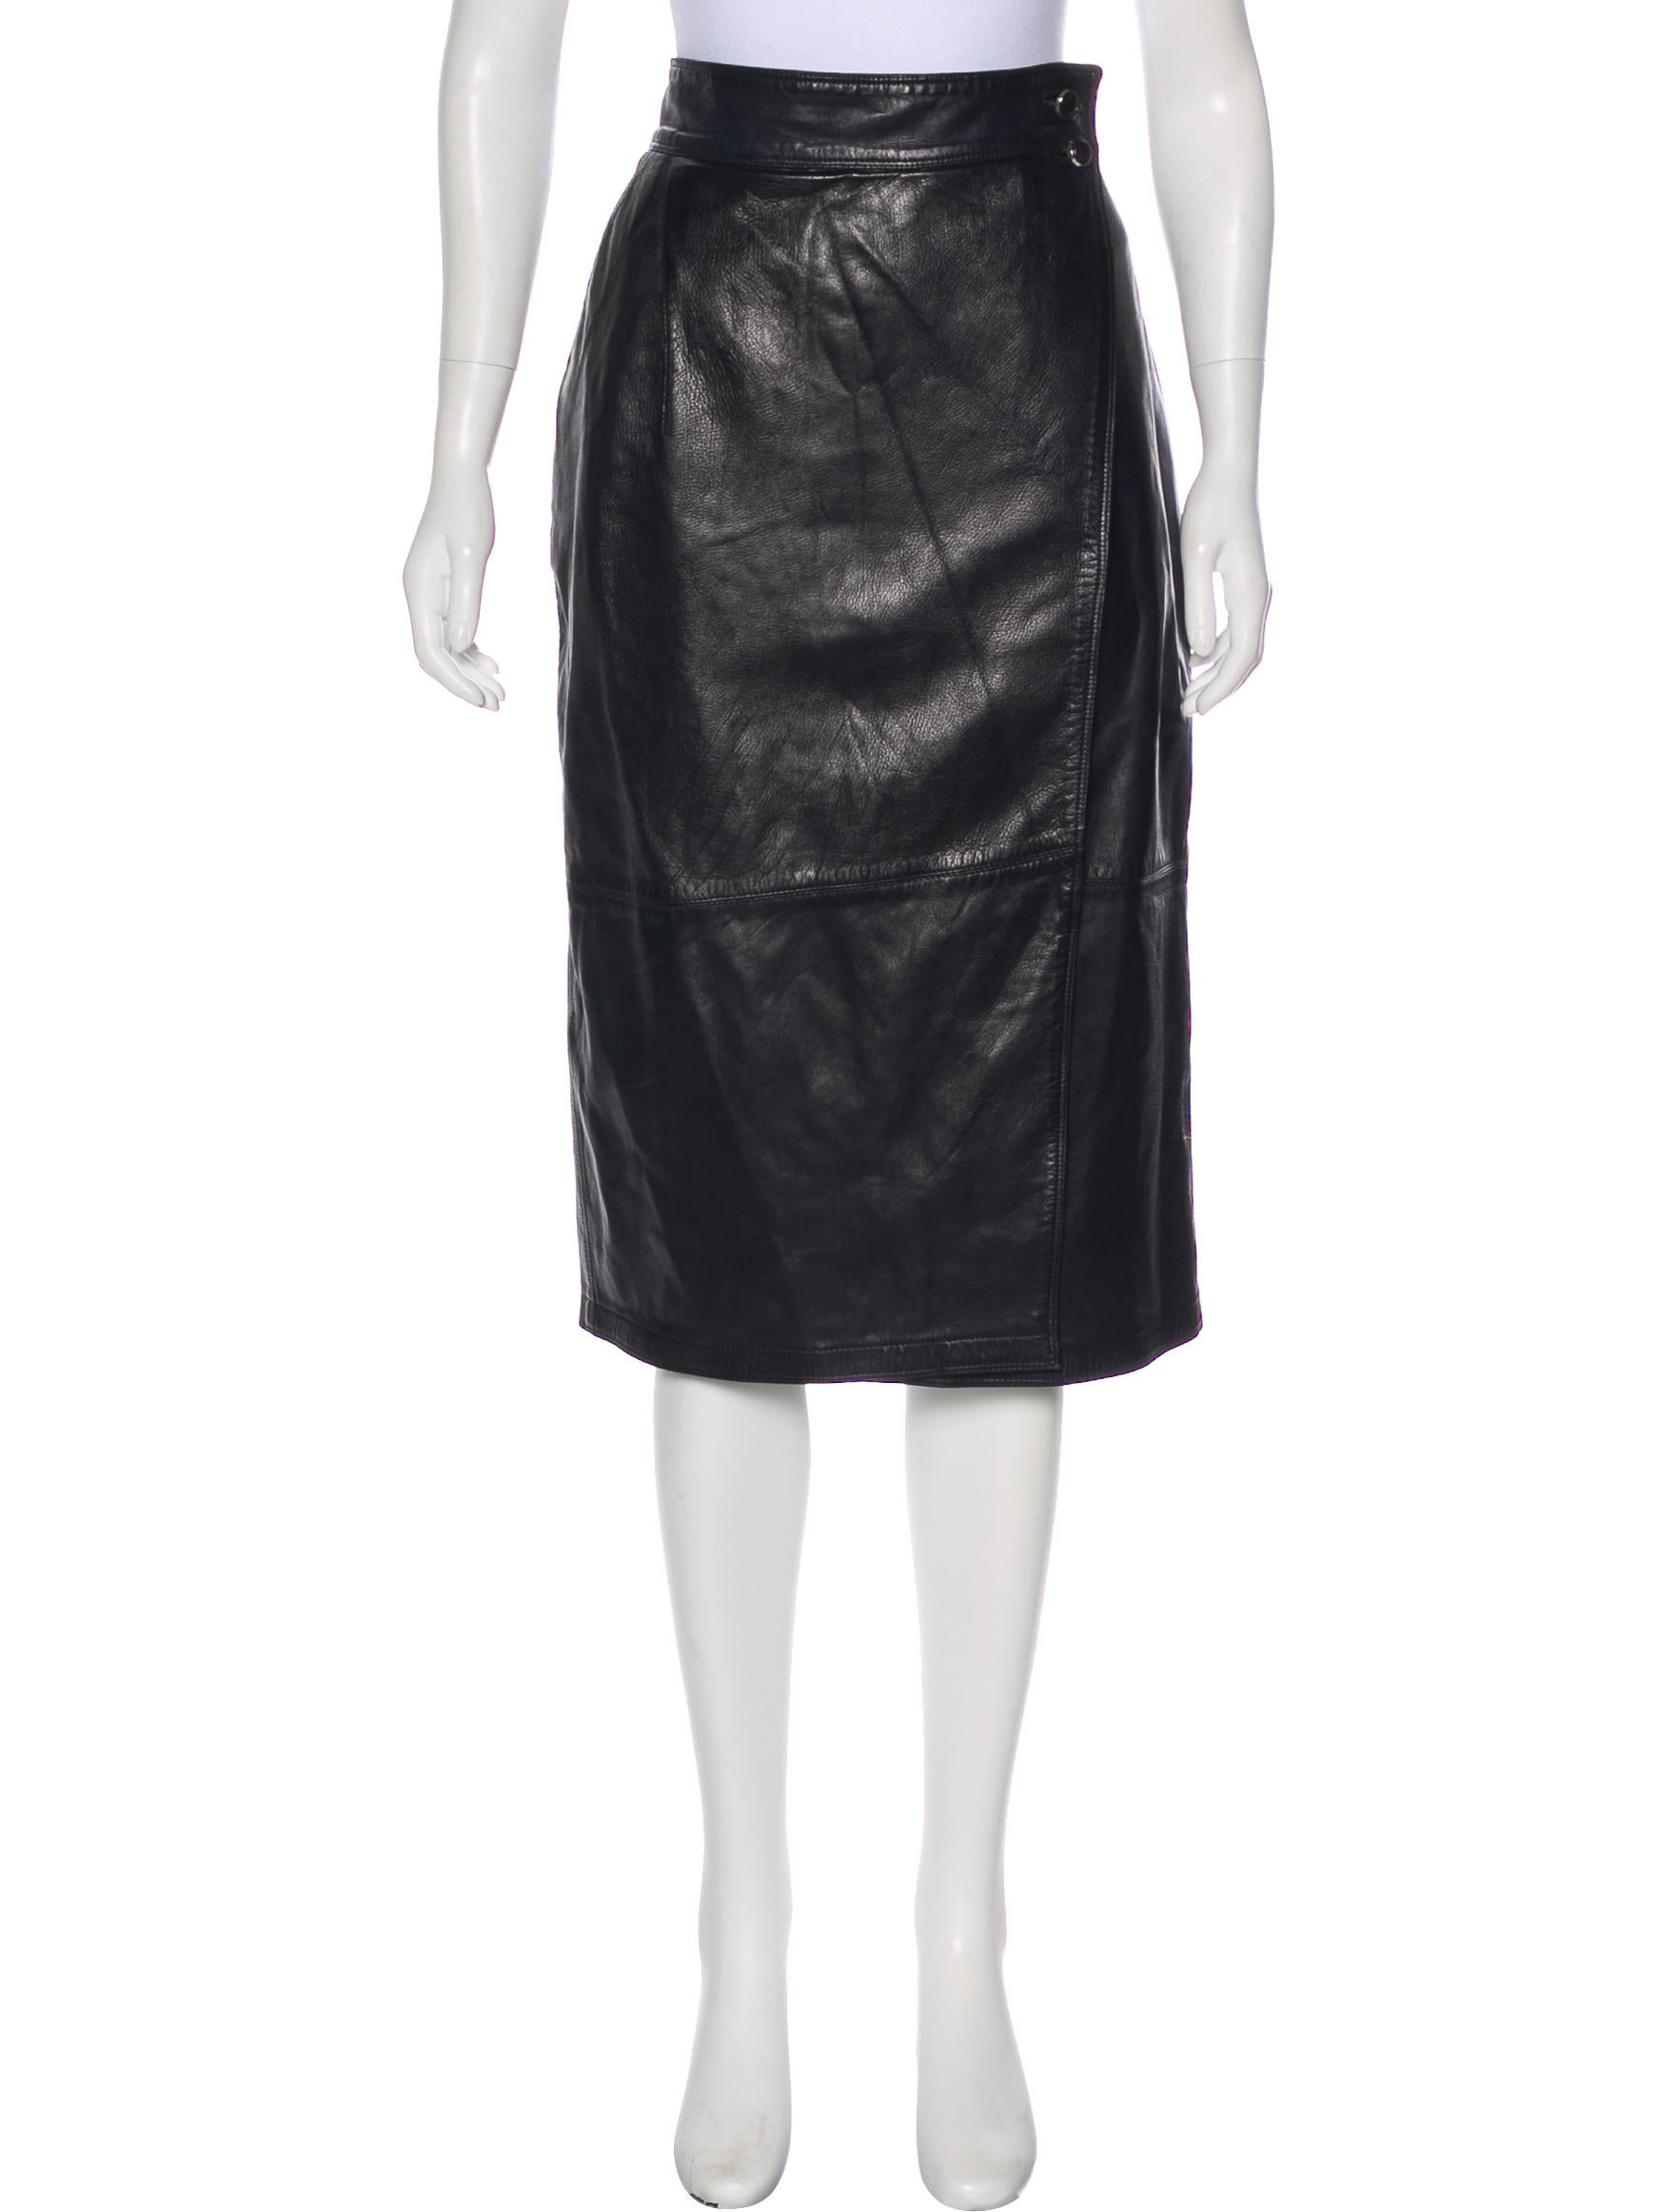 a2f768b3 Vintage Leather Skirt